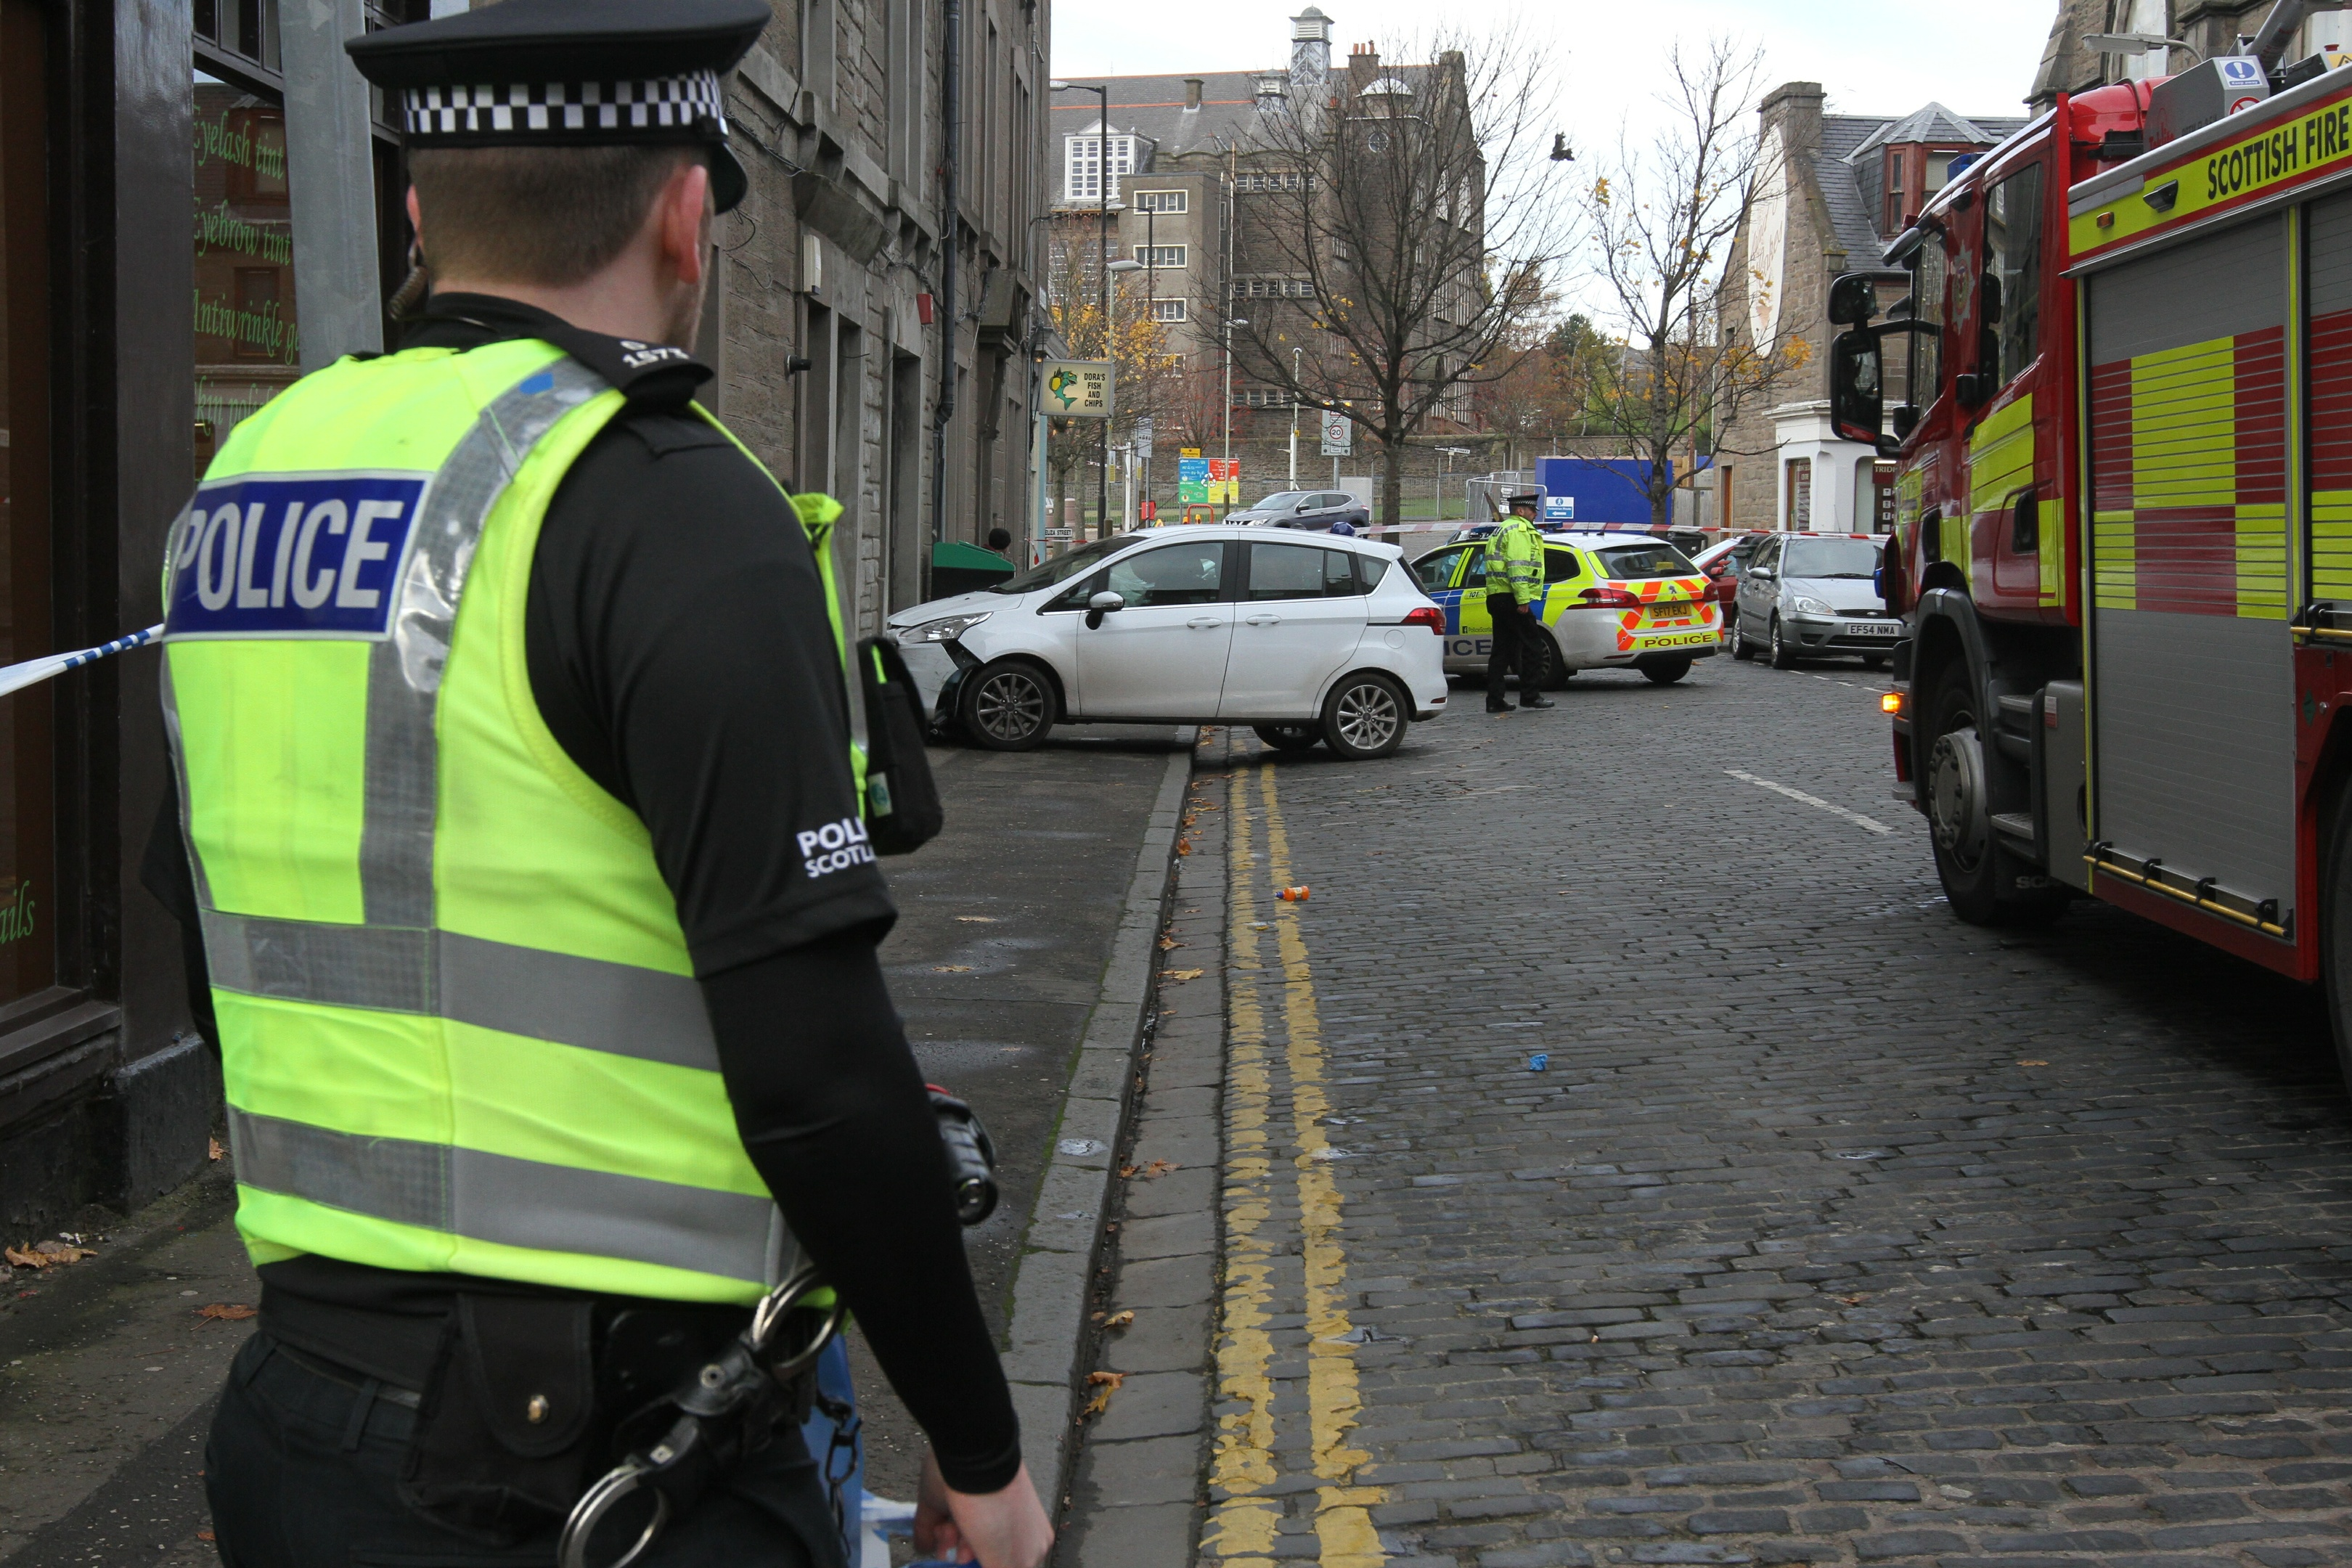 A police officer looks on at the scene of the crash on Eliza Street.